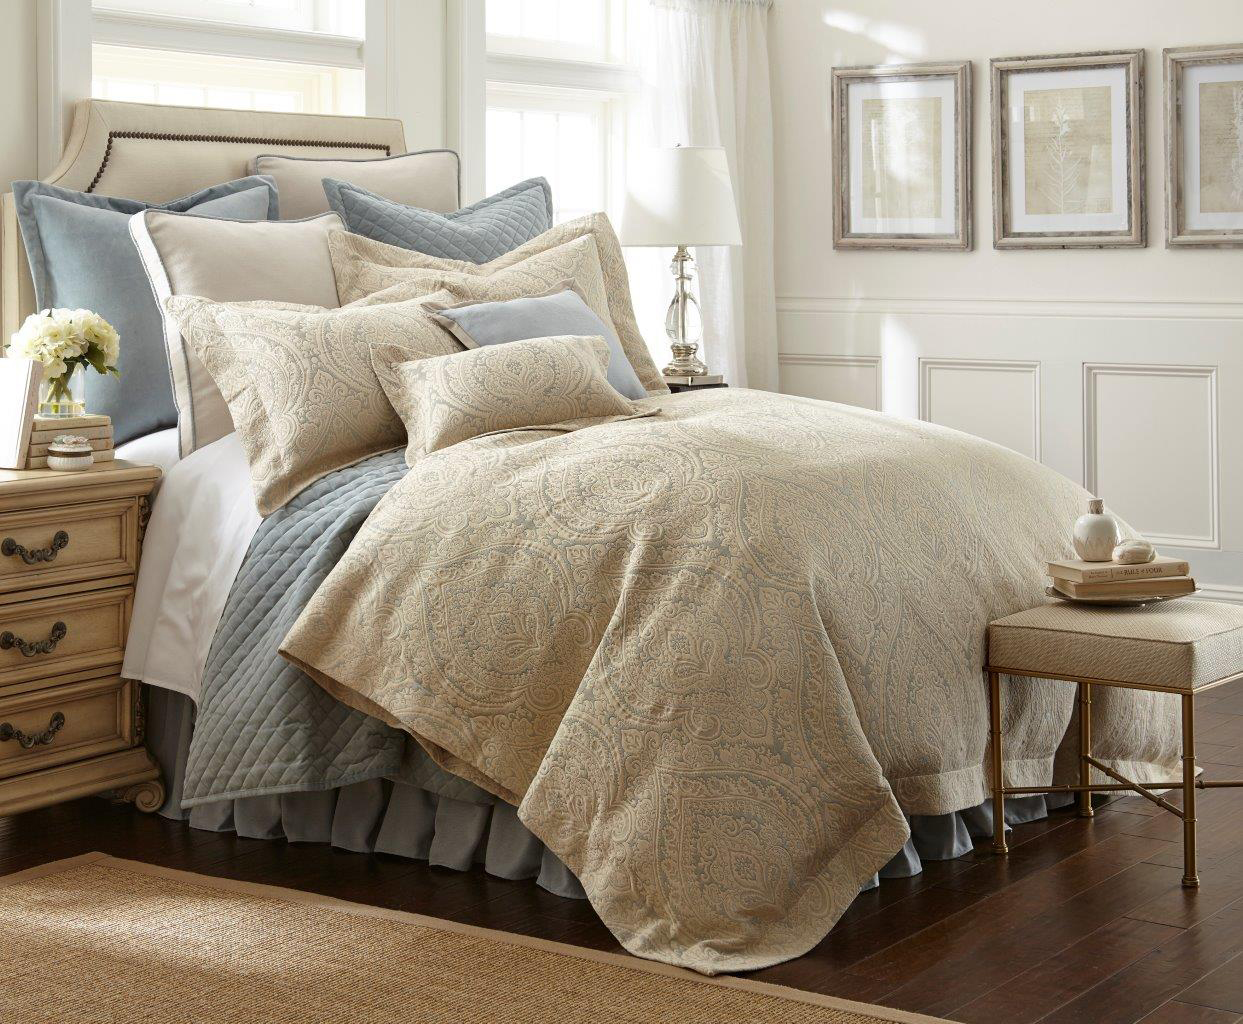 Abigail By Austin Horn Luxury Bedding Beddingsuperstore Com